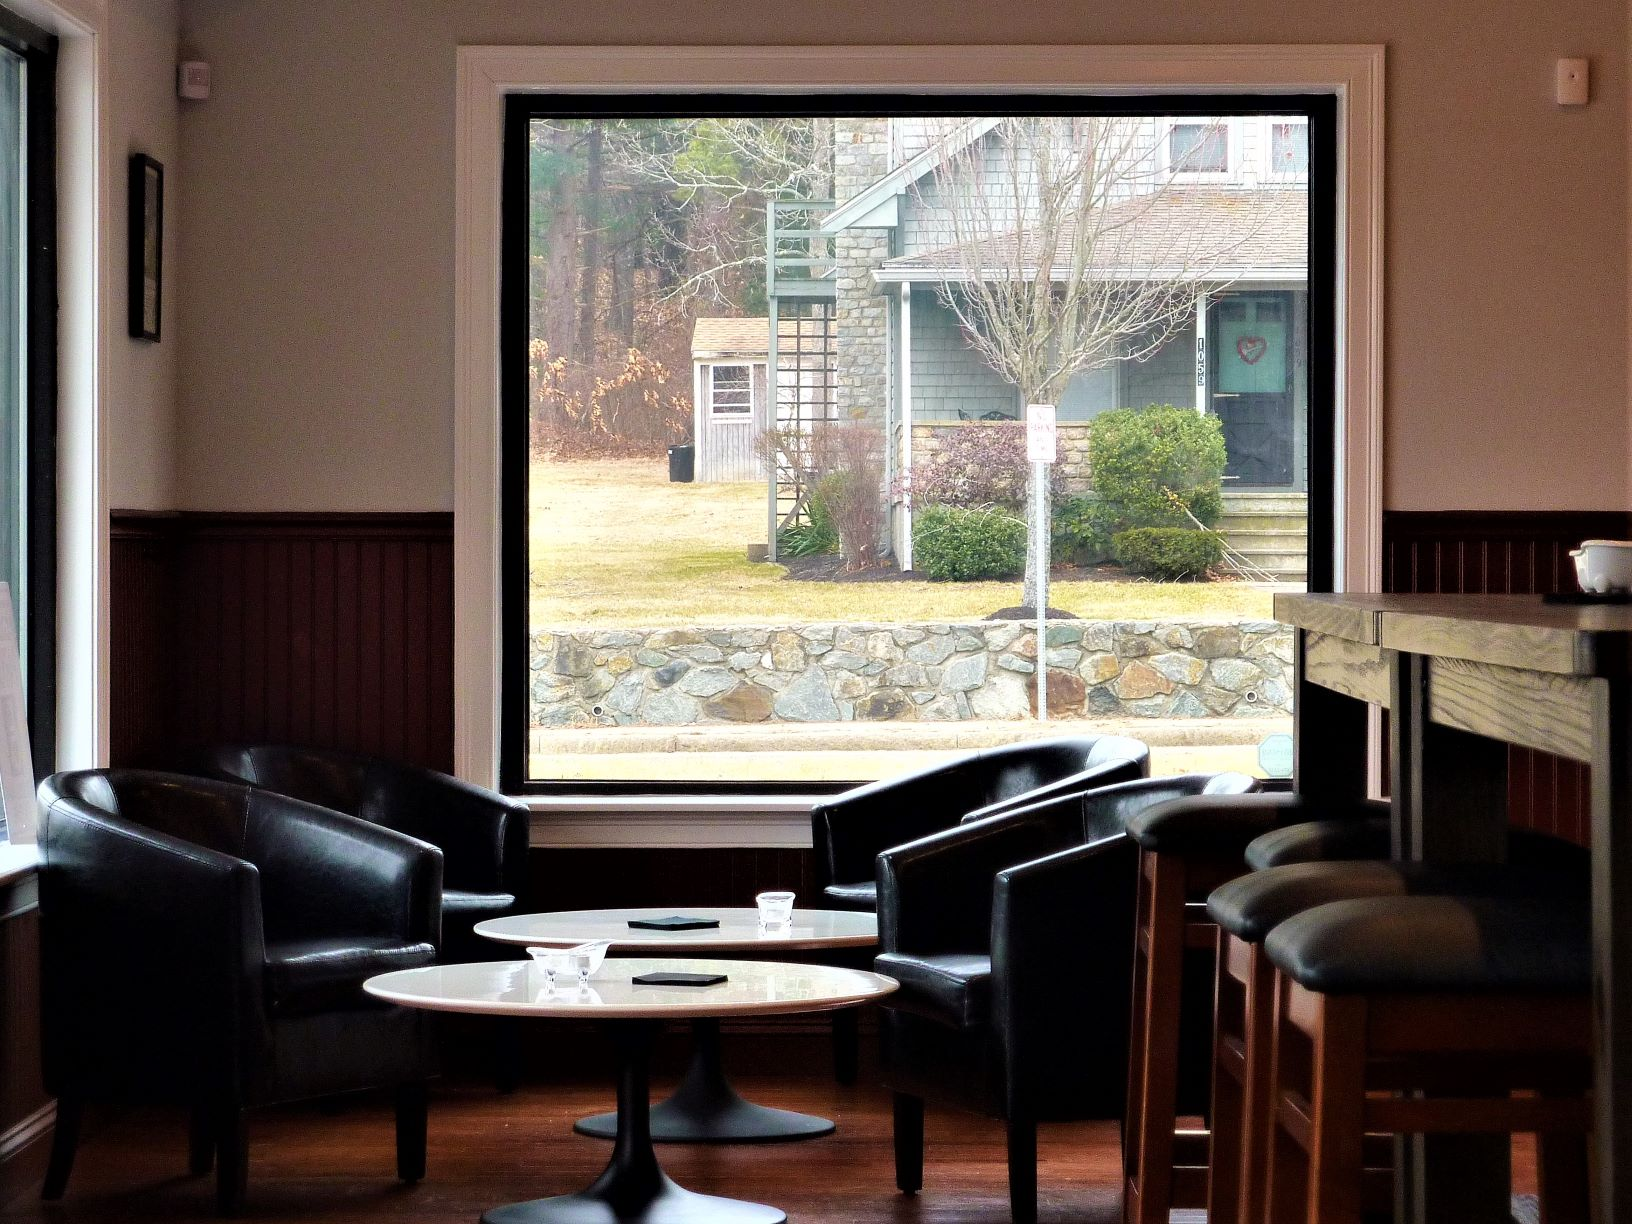 An inviting dining room section at Millis Clicquot Coffee in Millis, Mass.